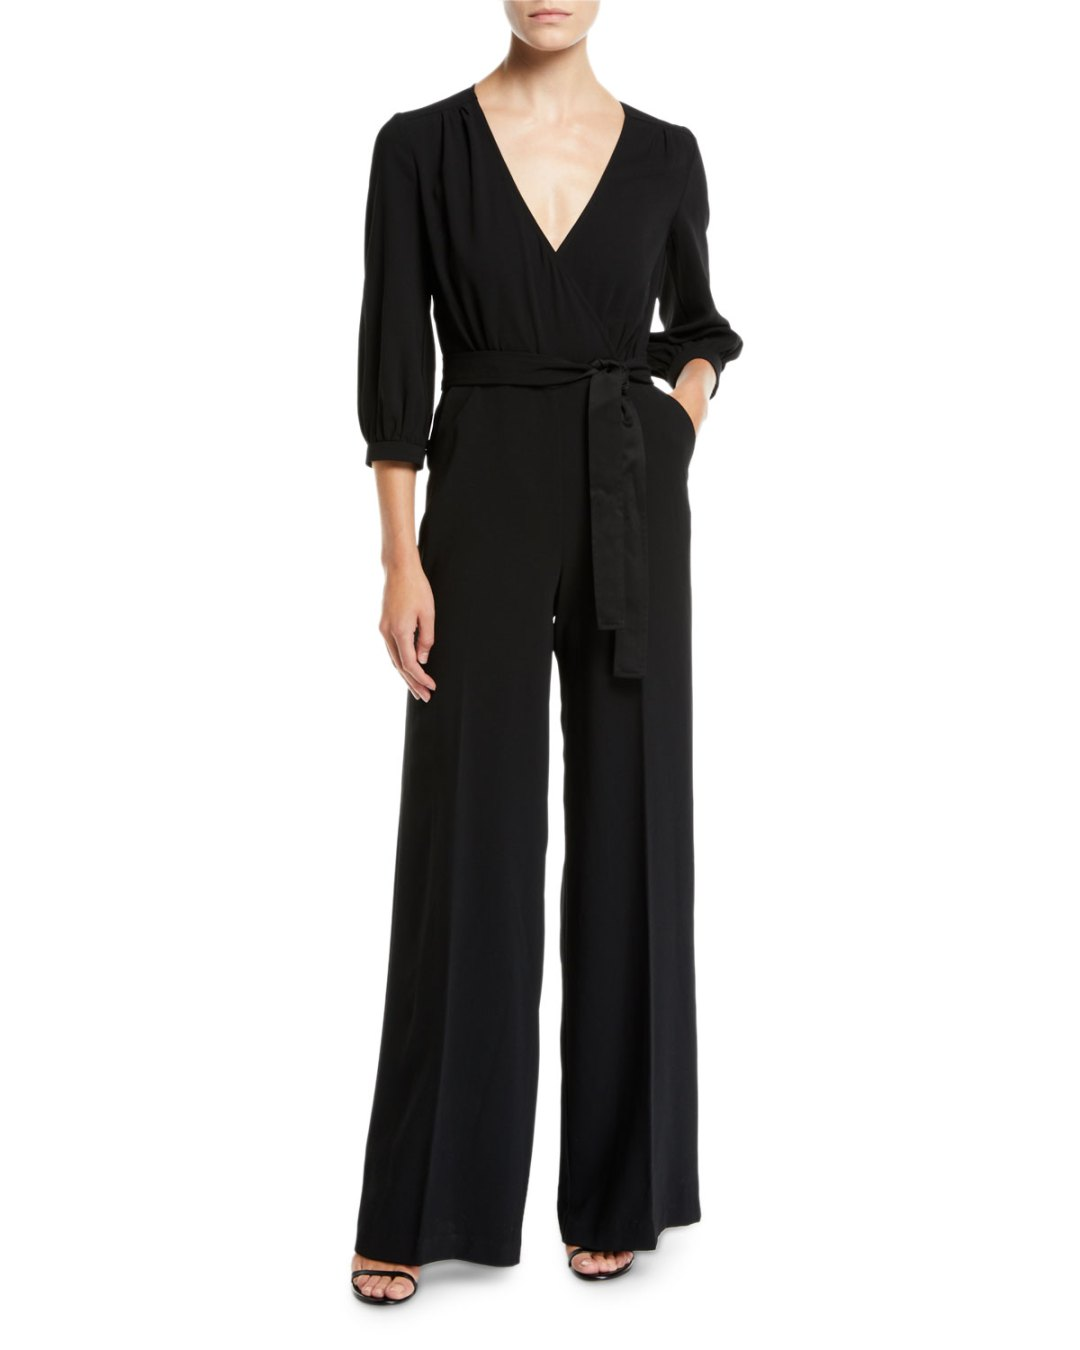 fdc26c3fe4c Neiman Marcus – Mineral V-Neck Jumpsuit w  Pockets –  358.00